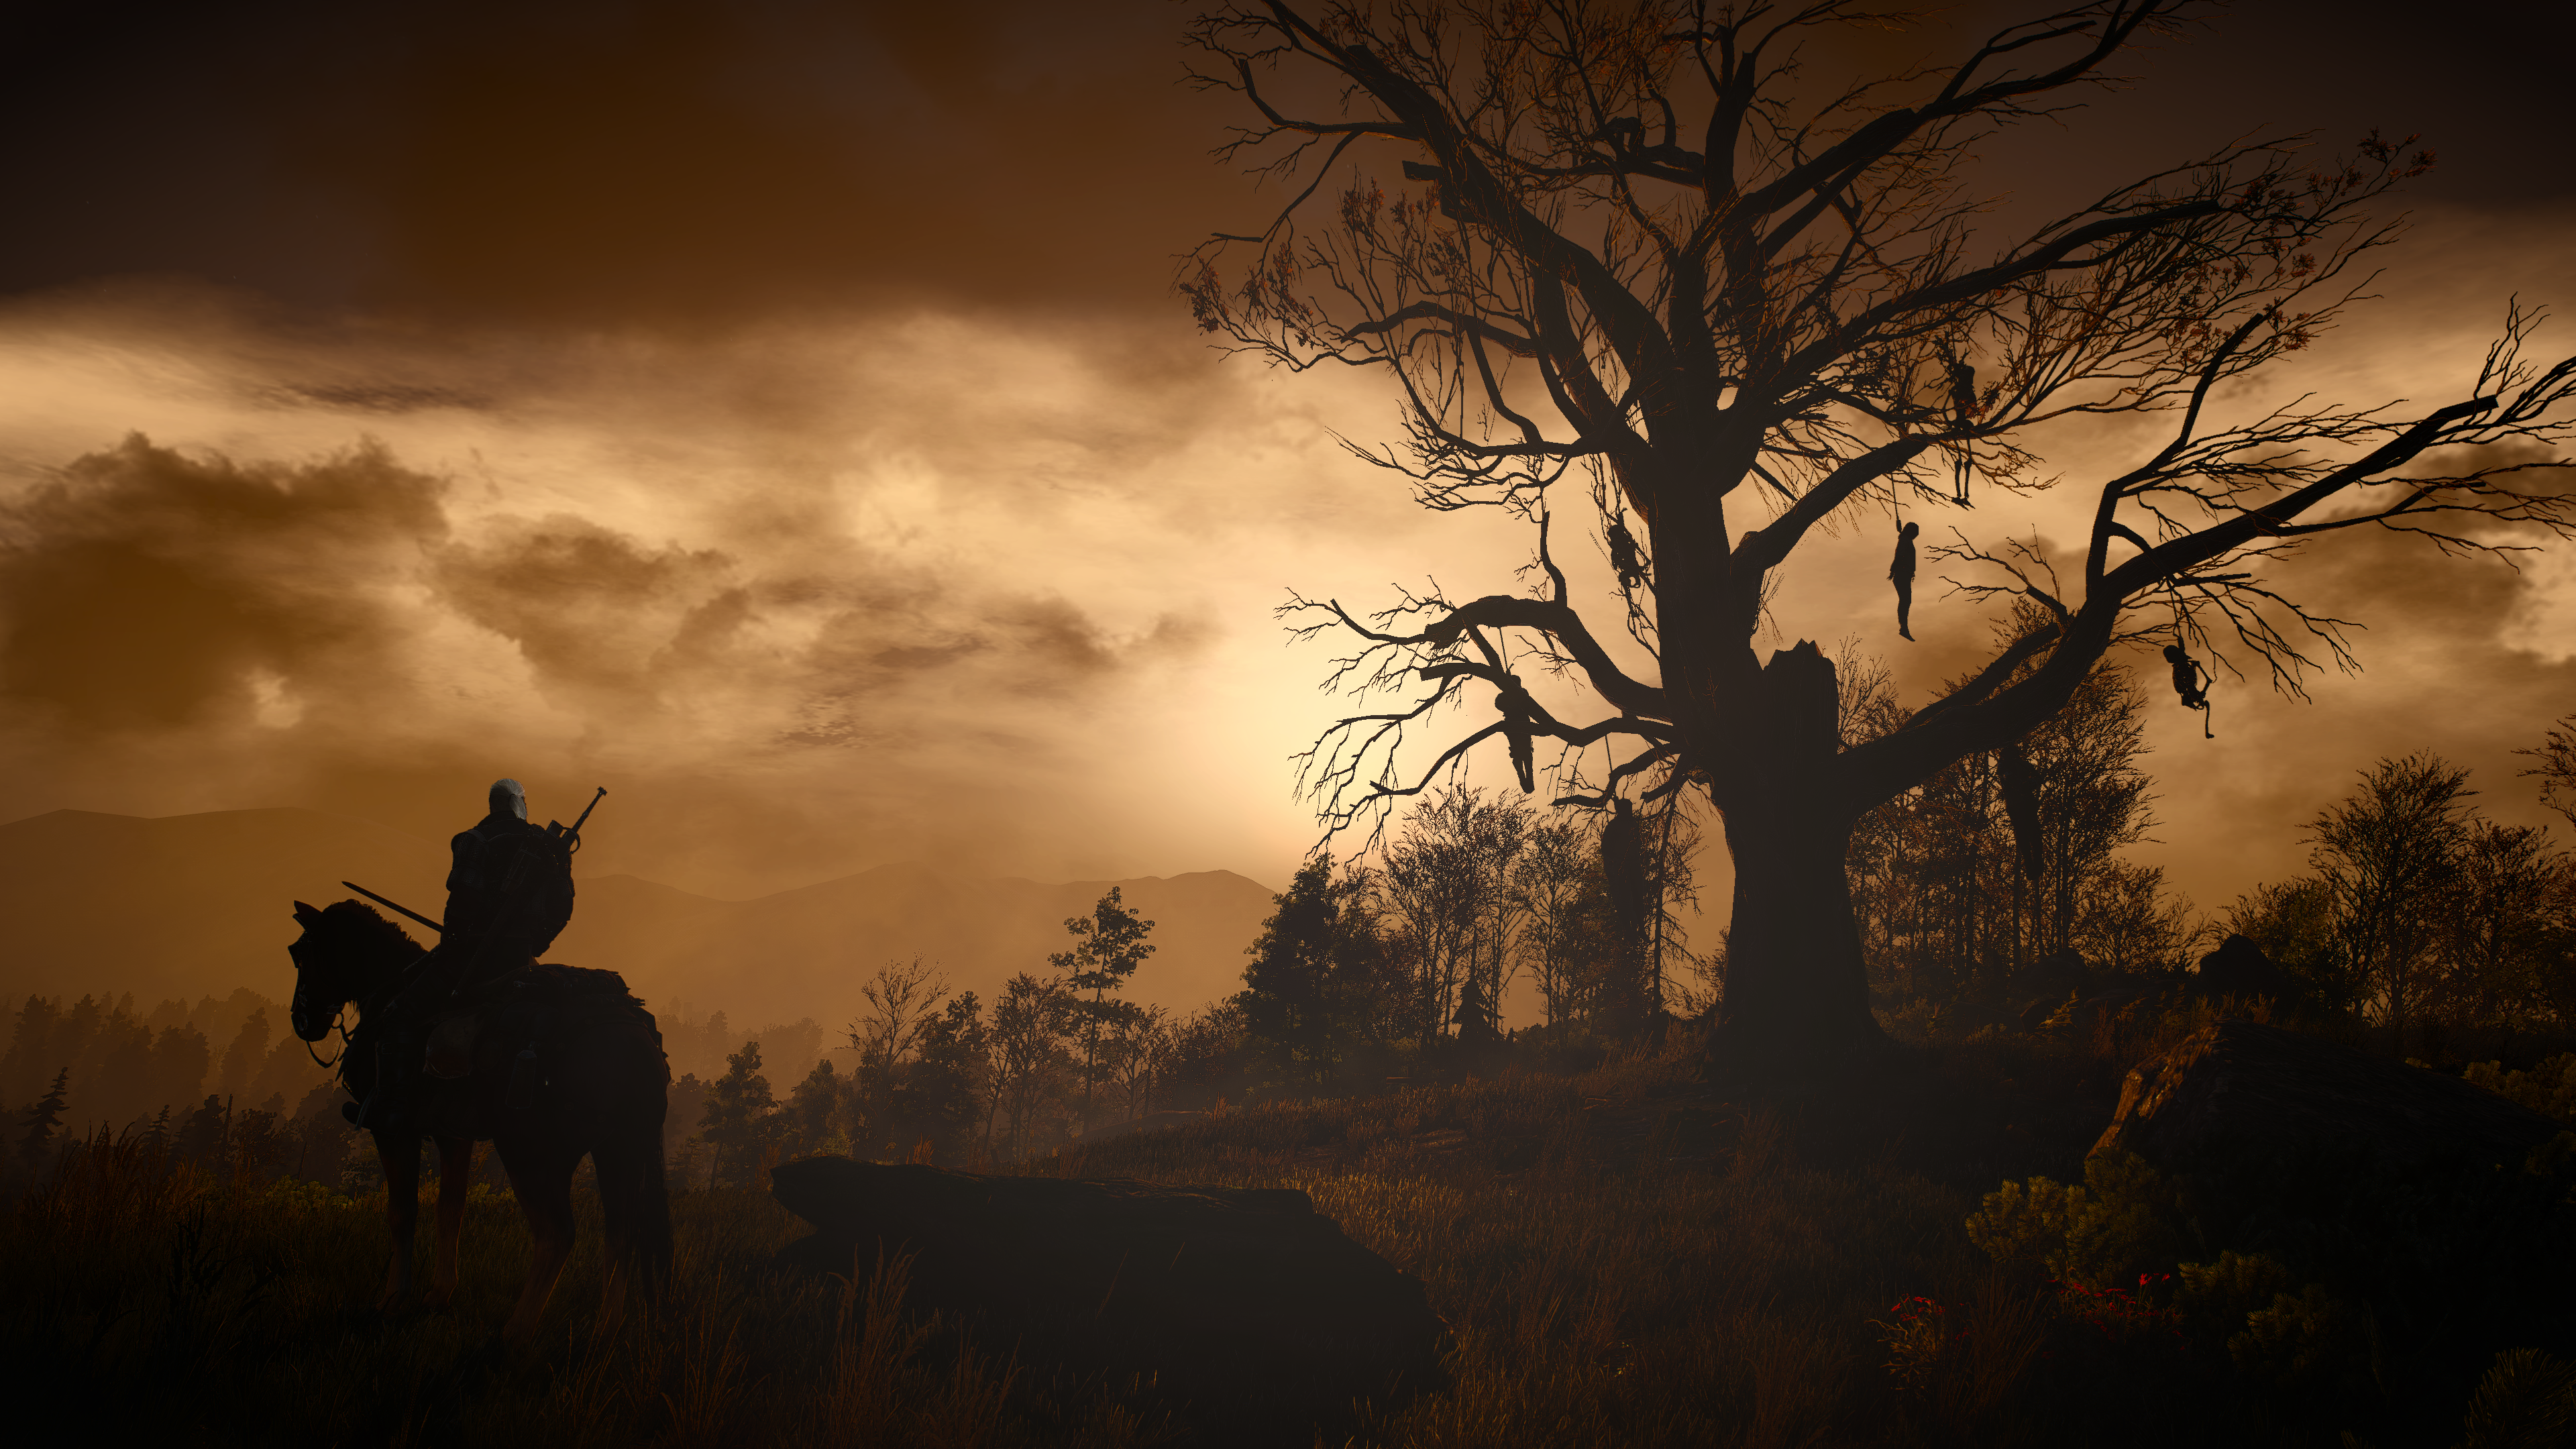 The witcher 3 wild hunt wallpapers pictures images - Hd wilderness wallpapers ...